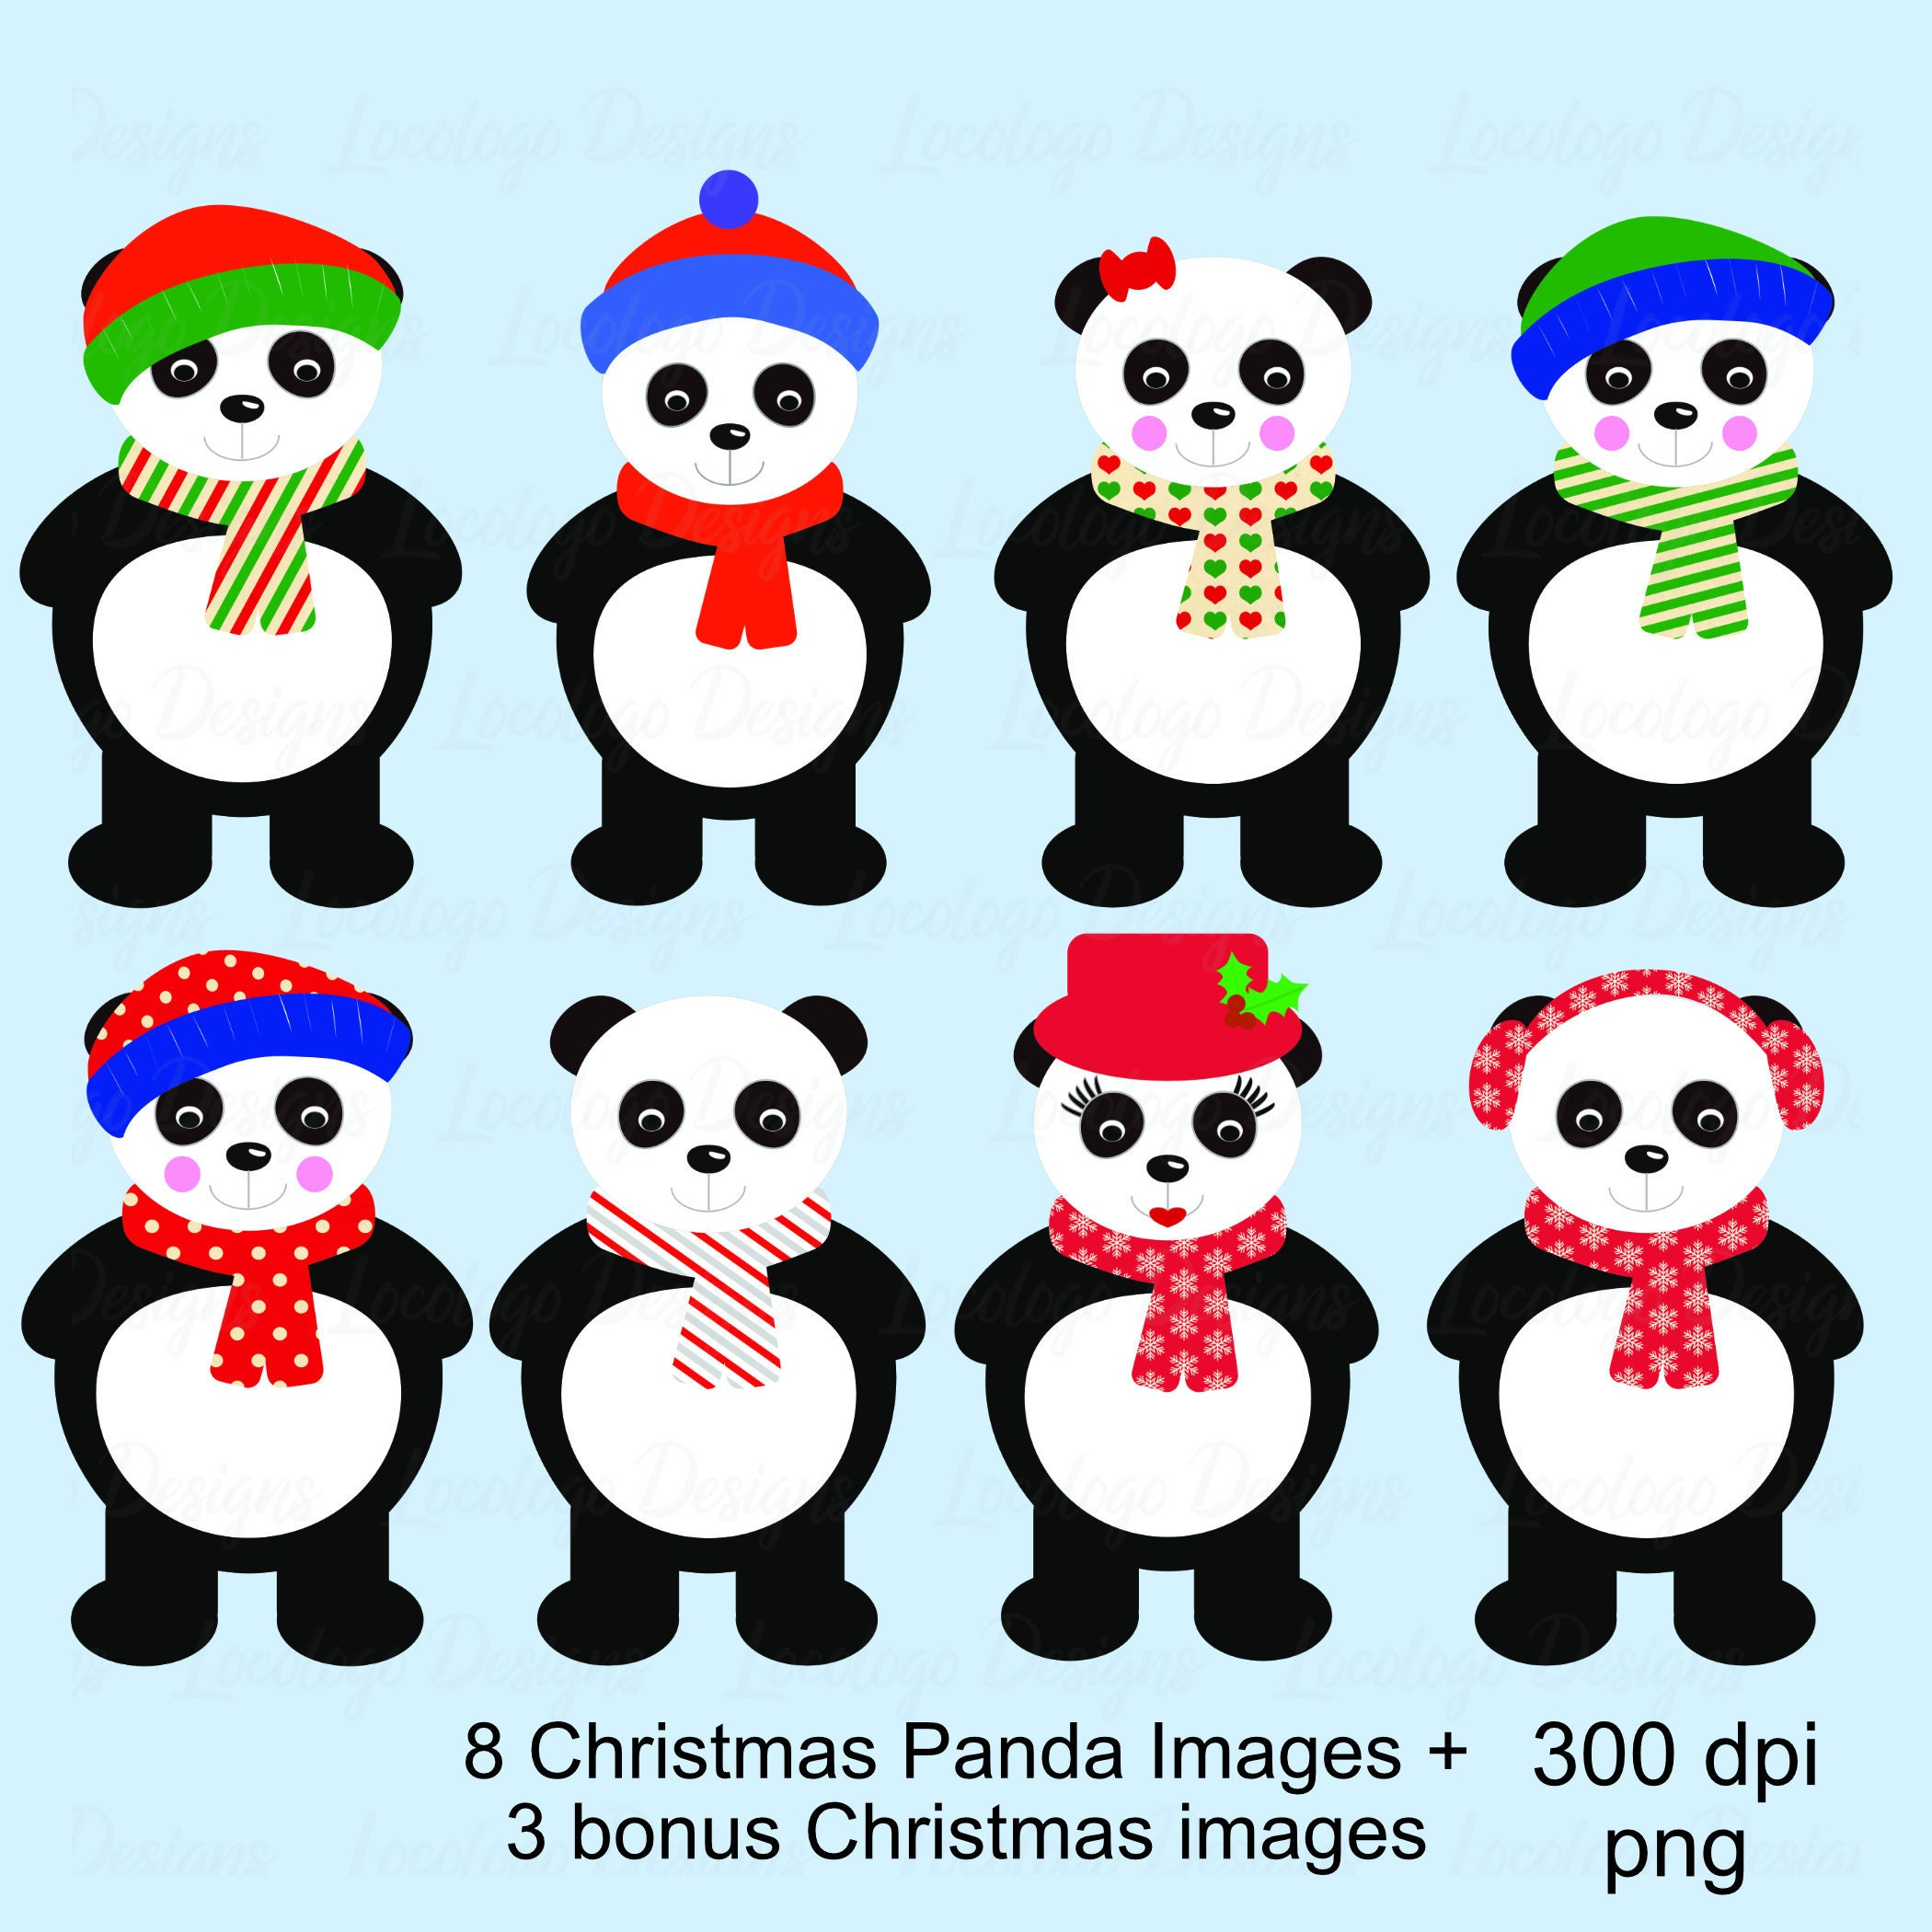 Weihnachtscliparts Panda Clipart Familie. | Etsy